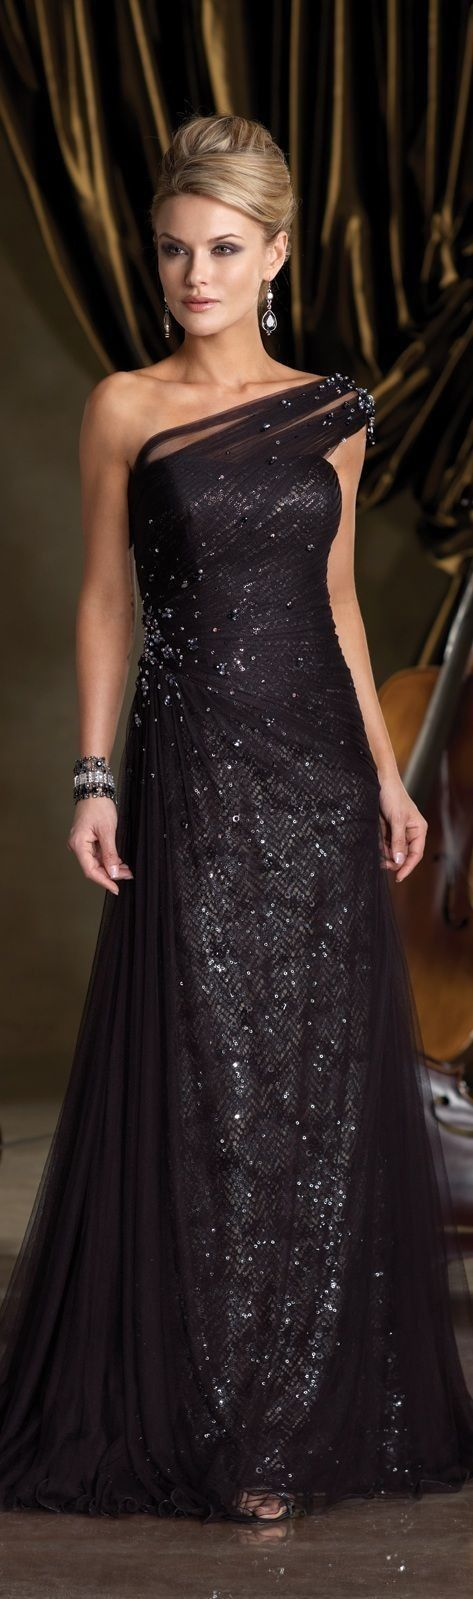 #Black #Sparkly #Gown #Dress #PartyDress #EveningWear